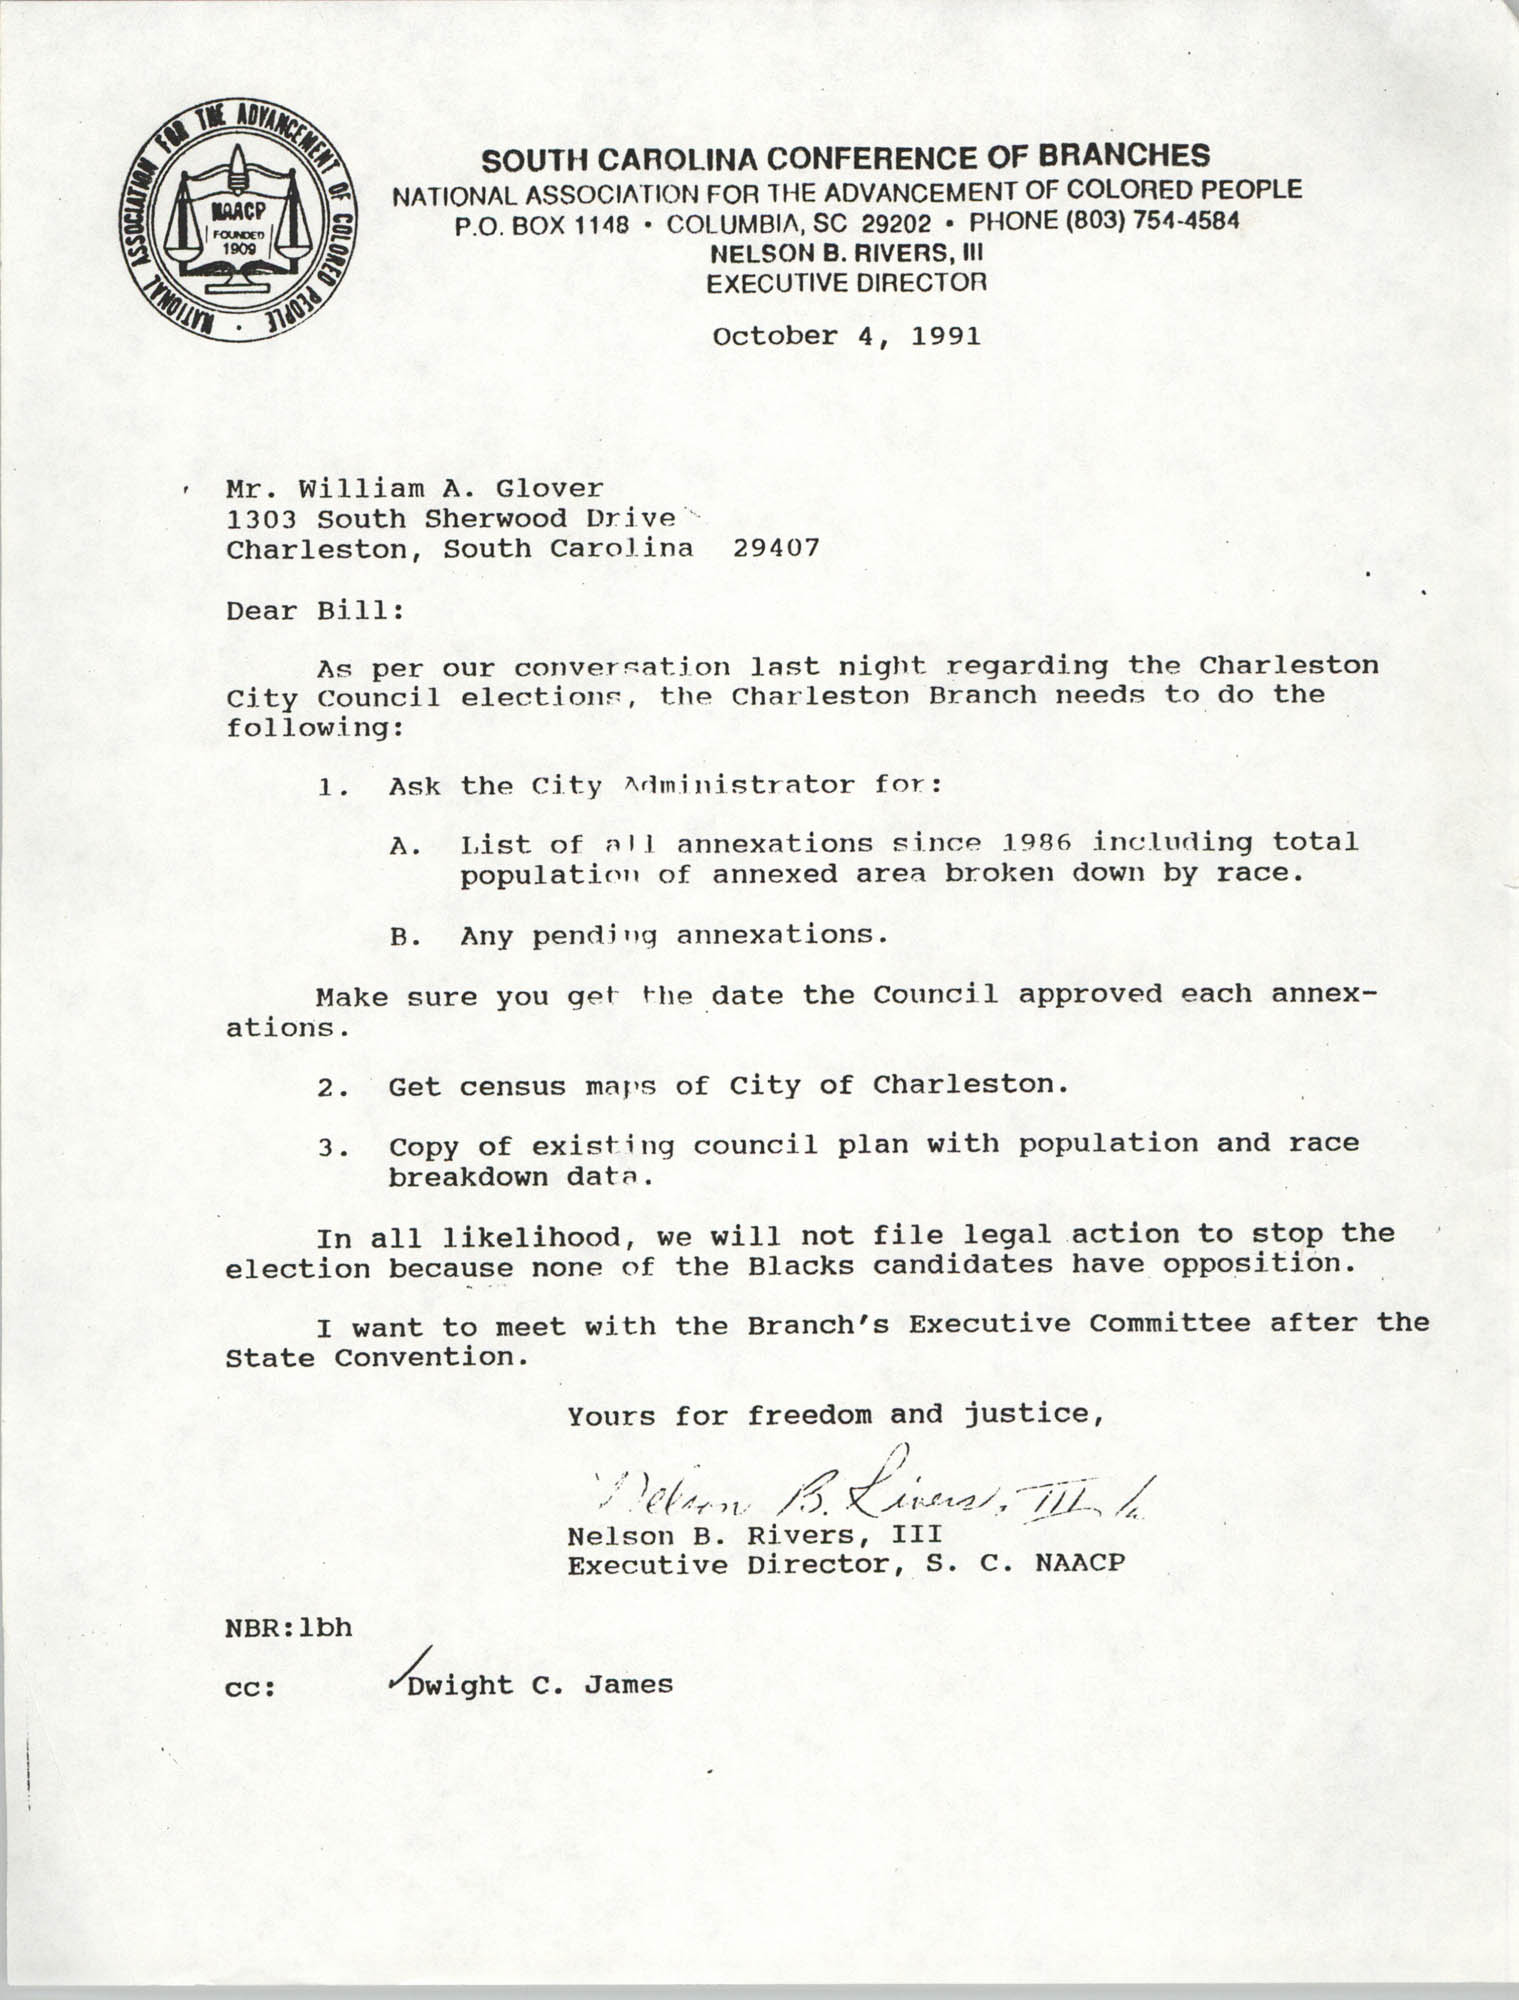 South Carolina Conference of Branches of the NAACP Memorandum, October 4, 1991